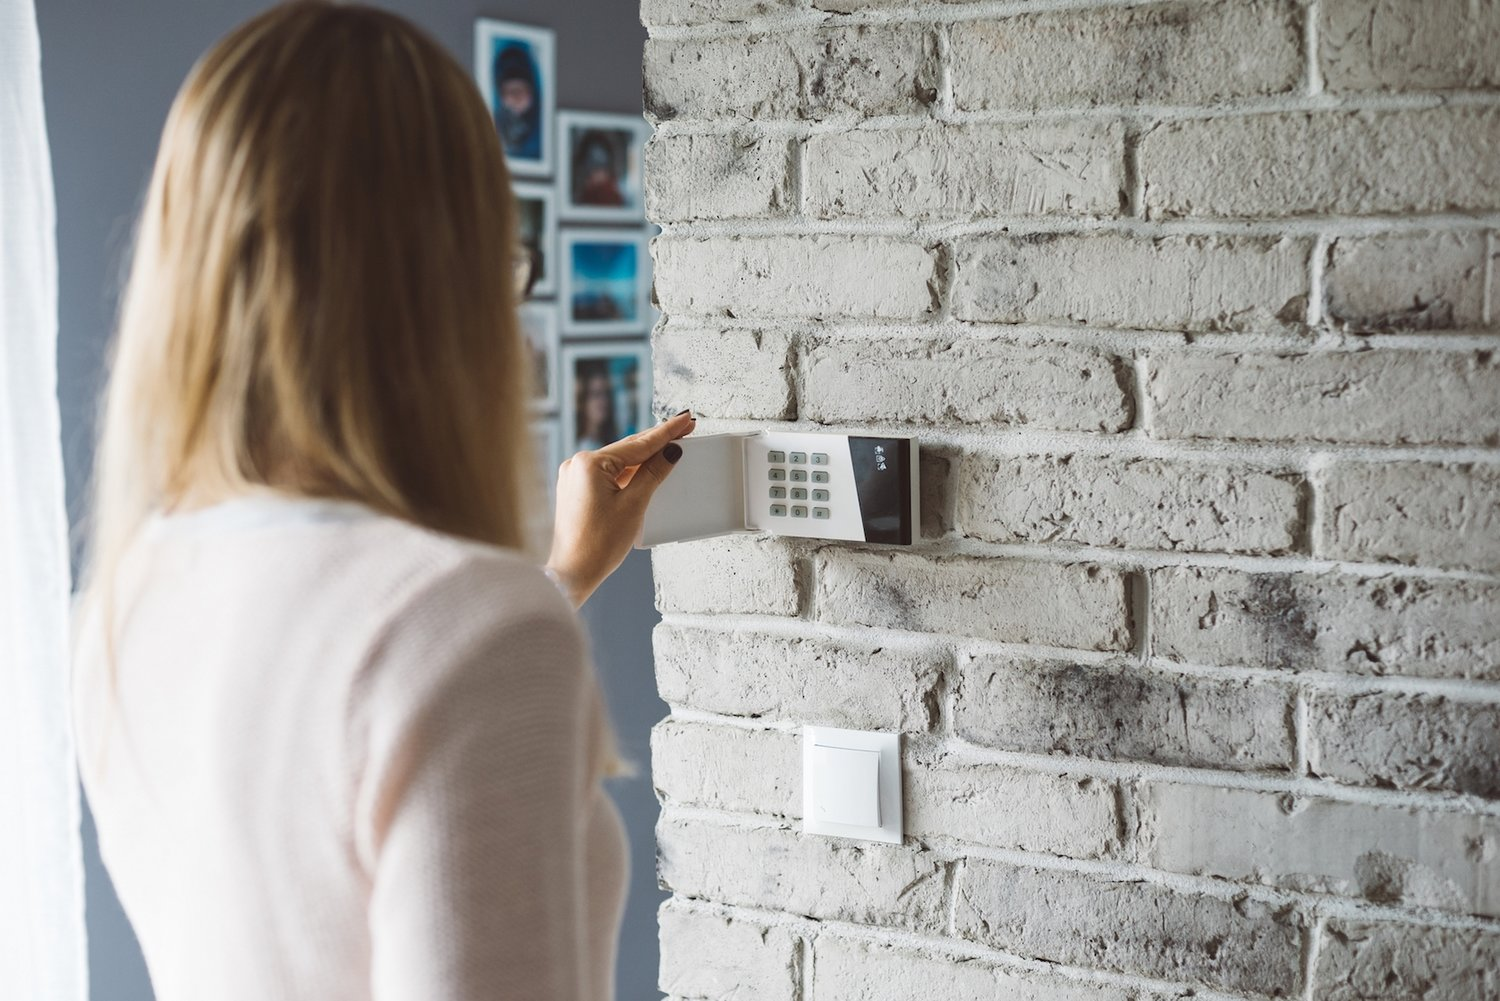 Smart-Home-Security Installing Your First Smart Home Security System: Top Tips From Our Experts